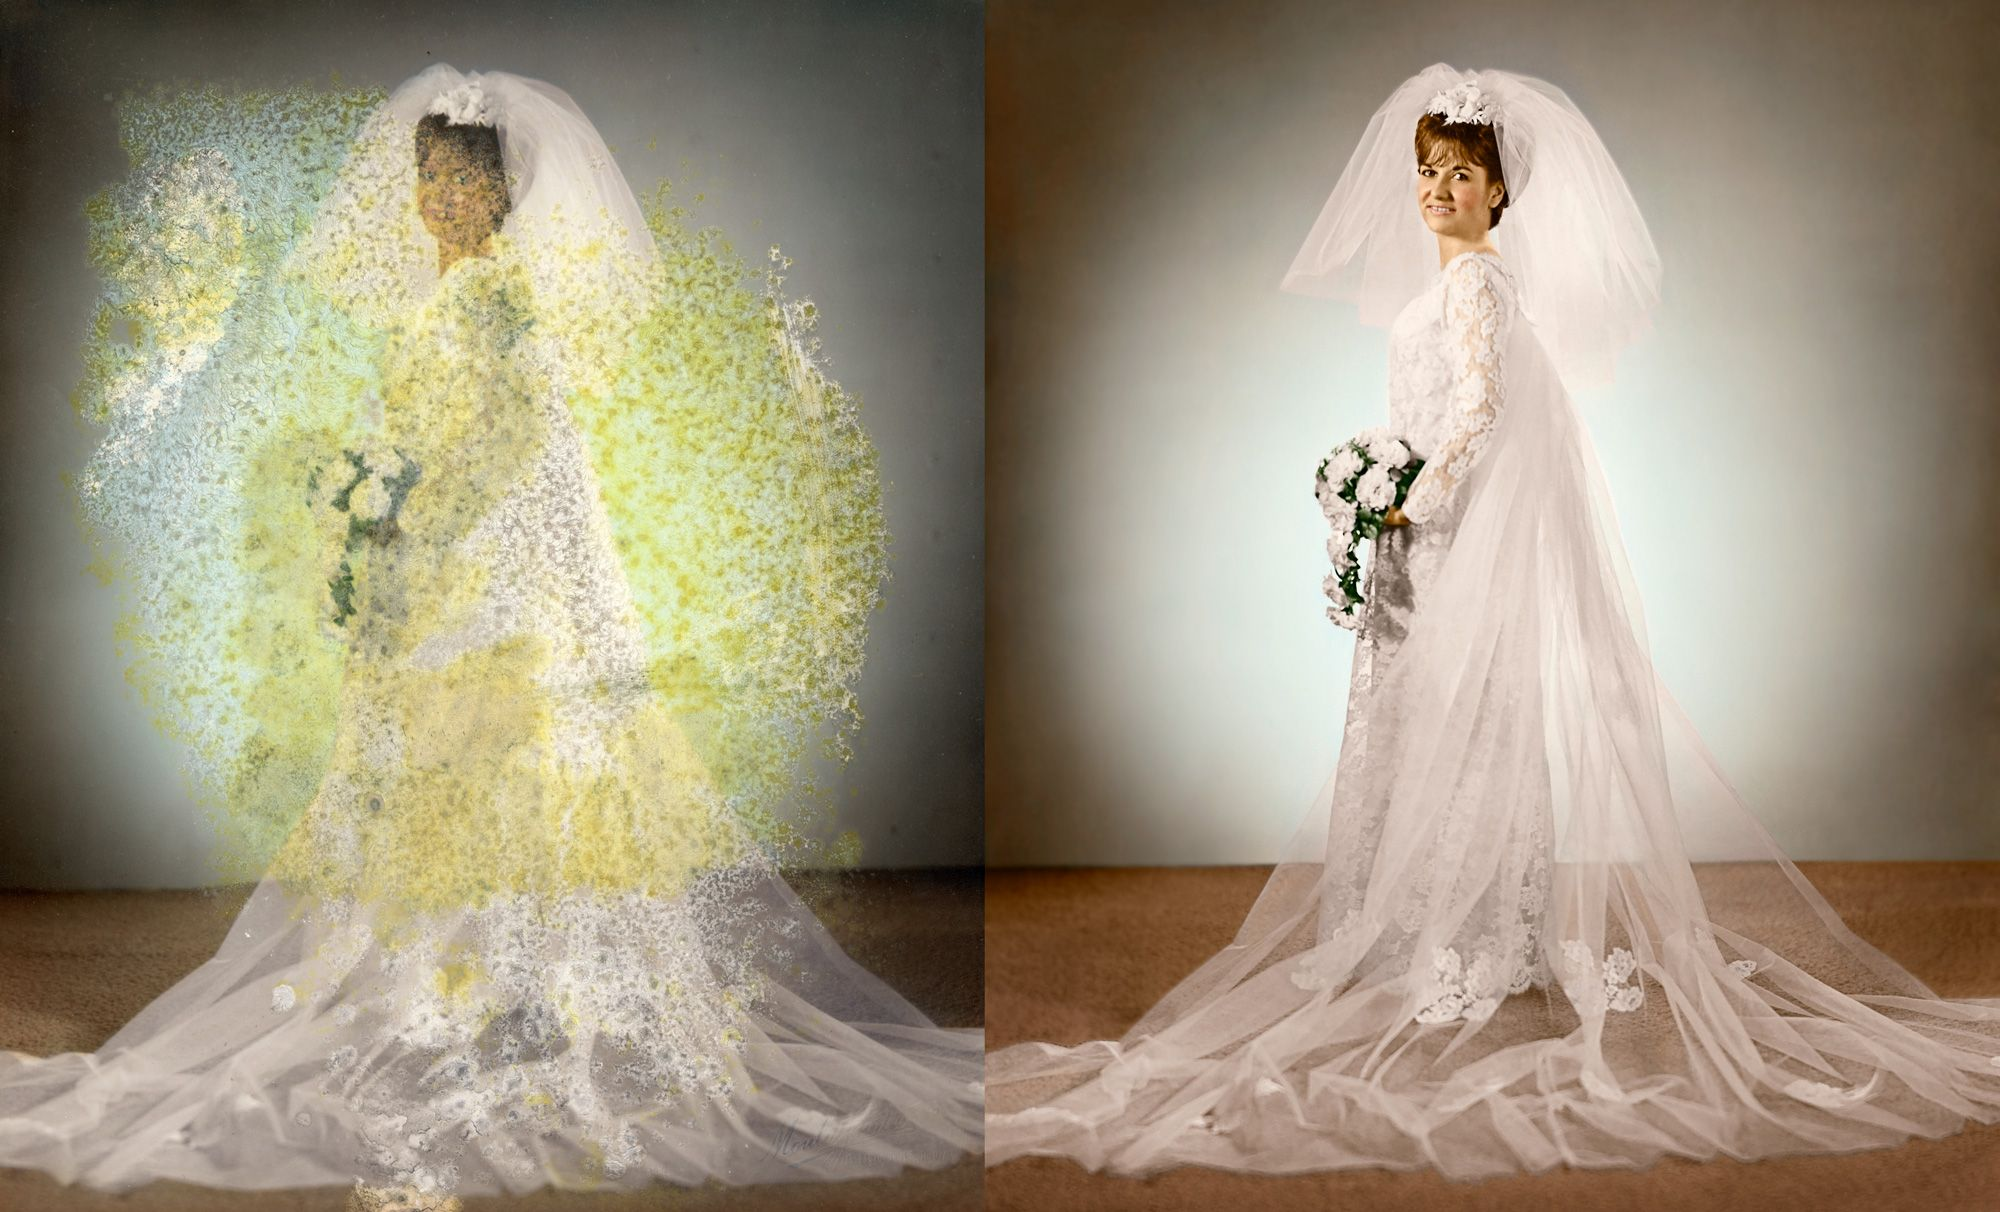 Wedding-photo-restoration.jpg